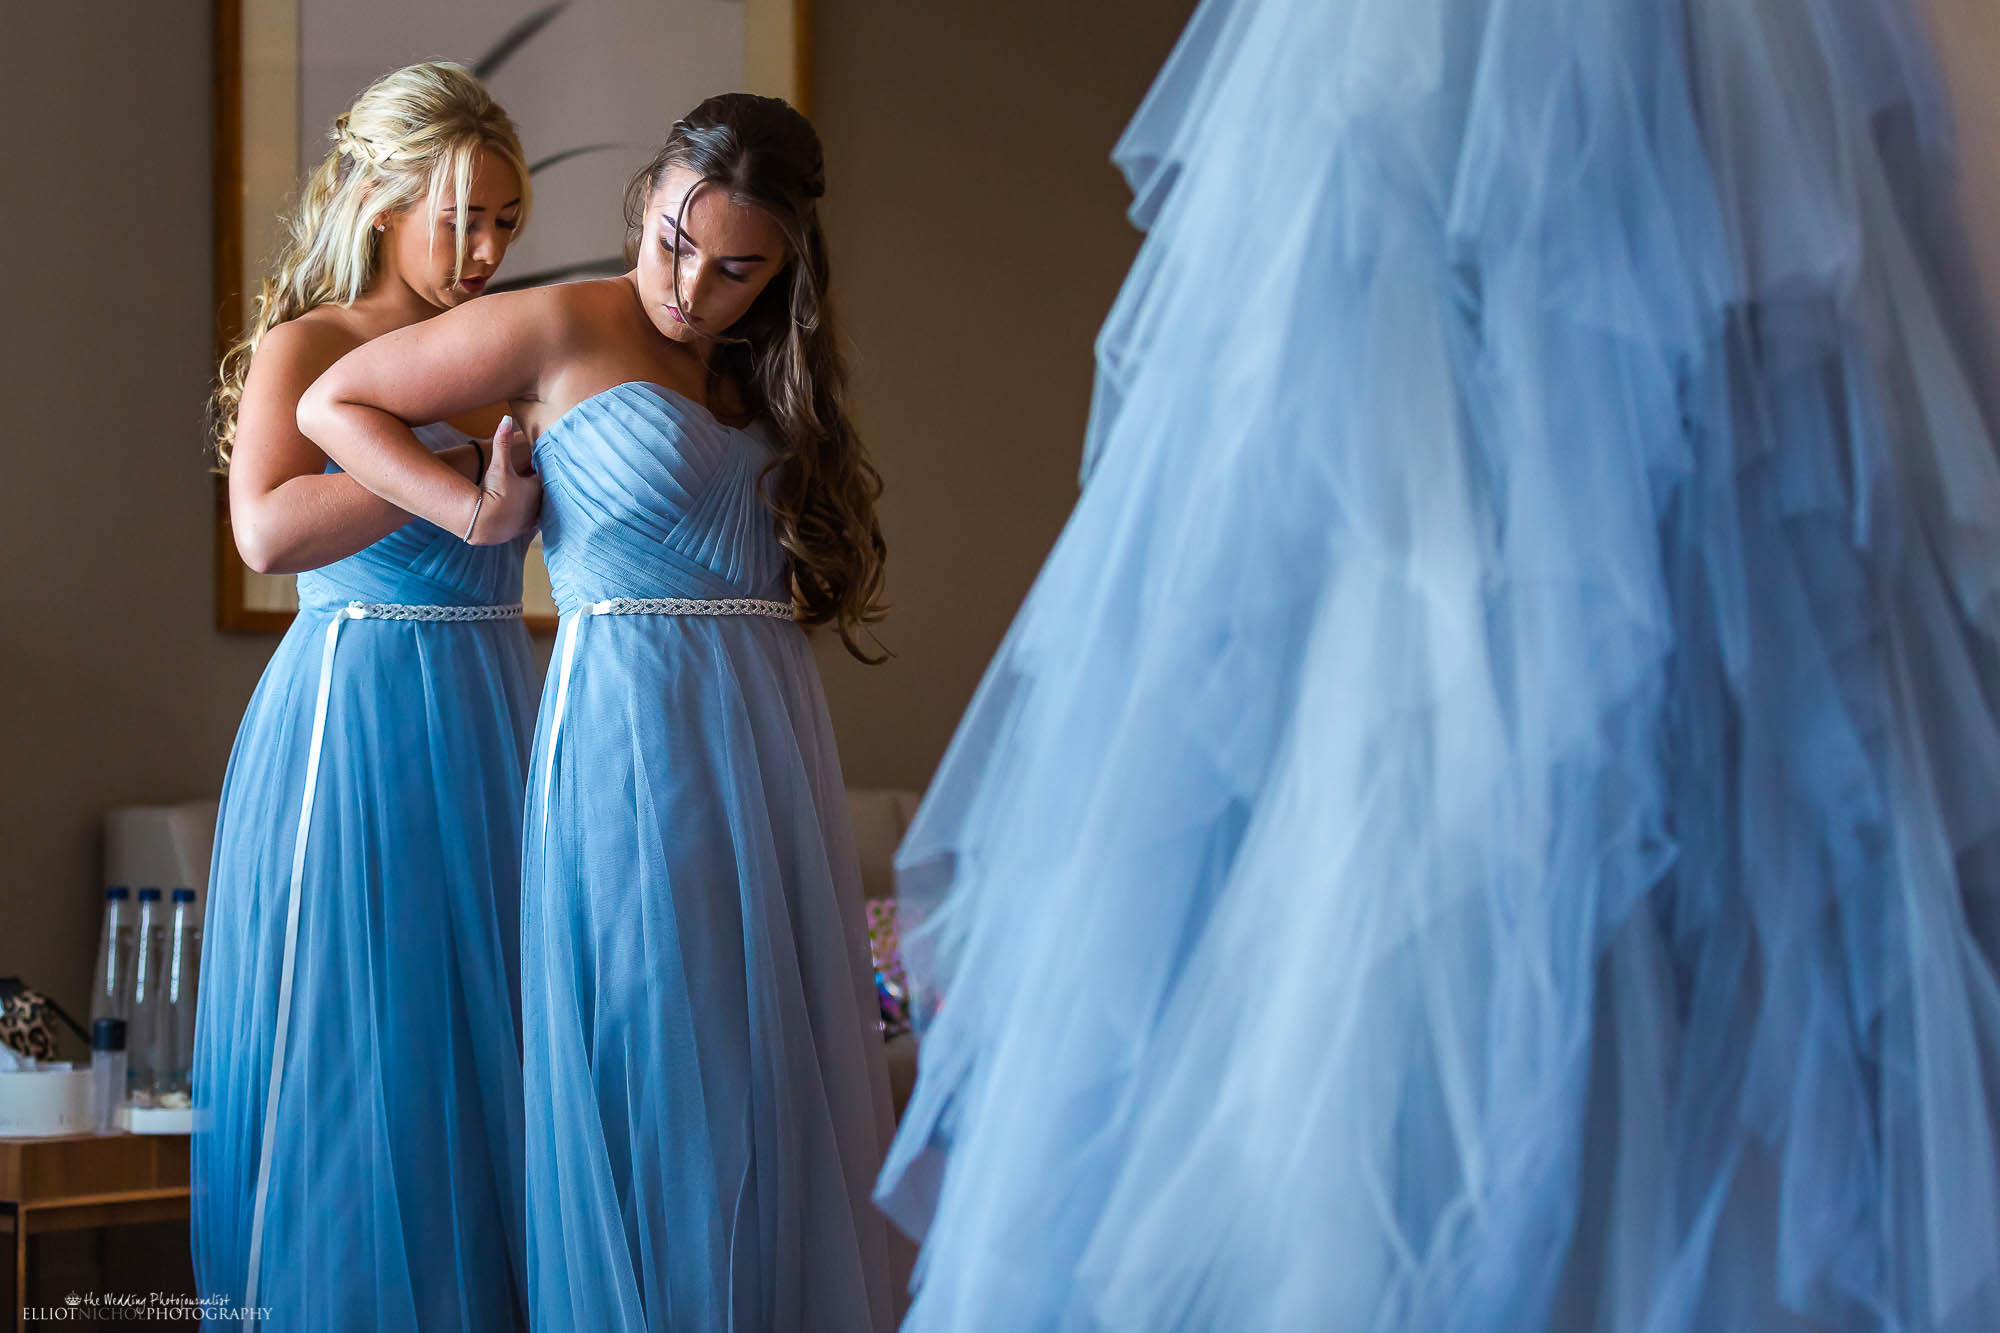 Bridesmaids helping each other into their blue bridesmaid dresses. North East wedding photography